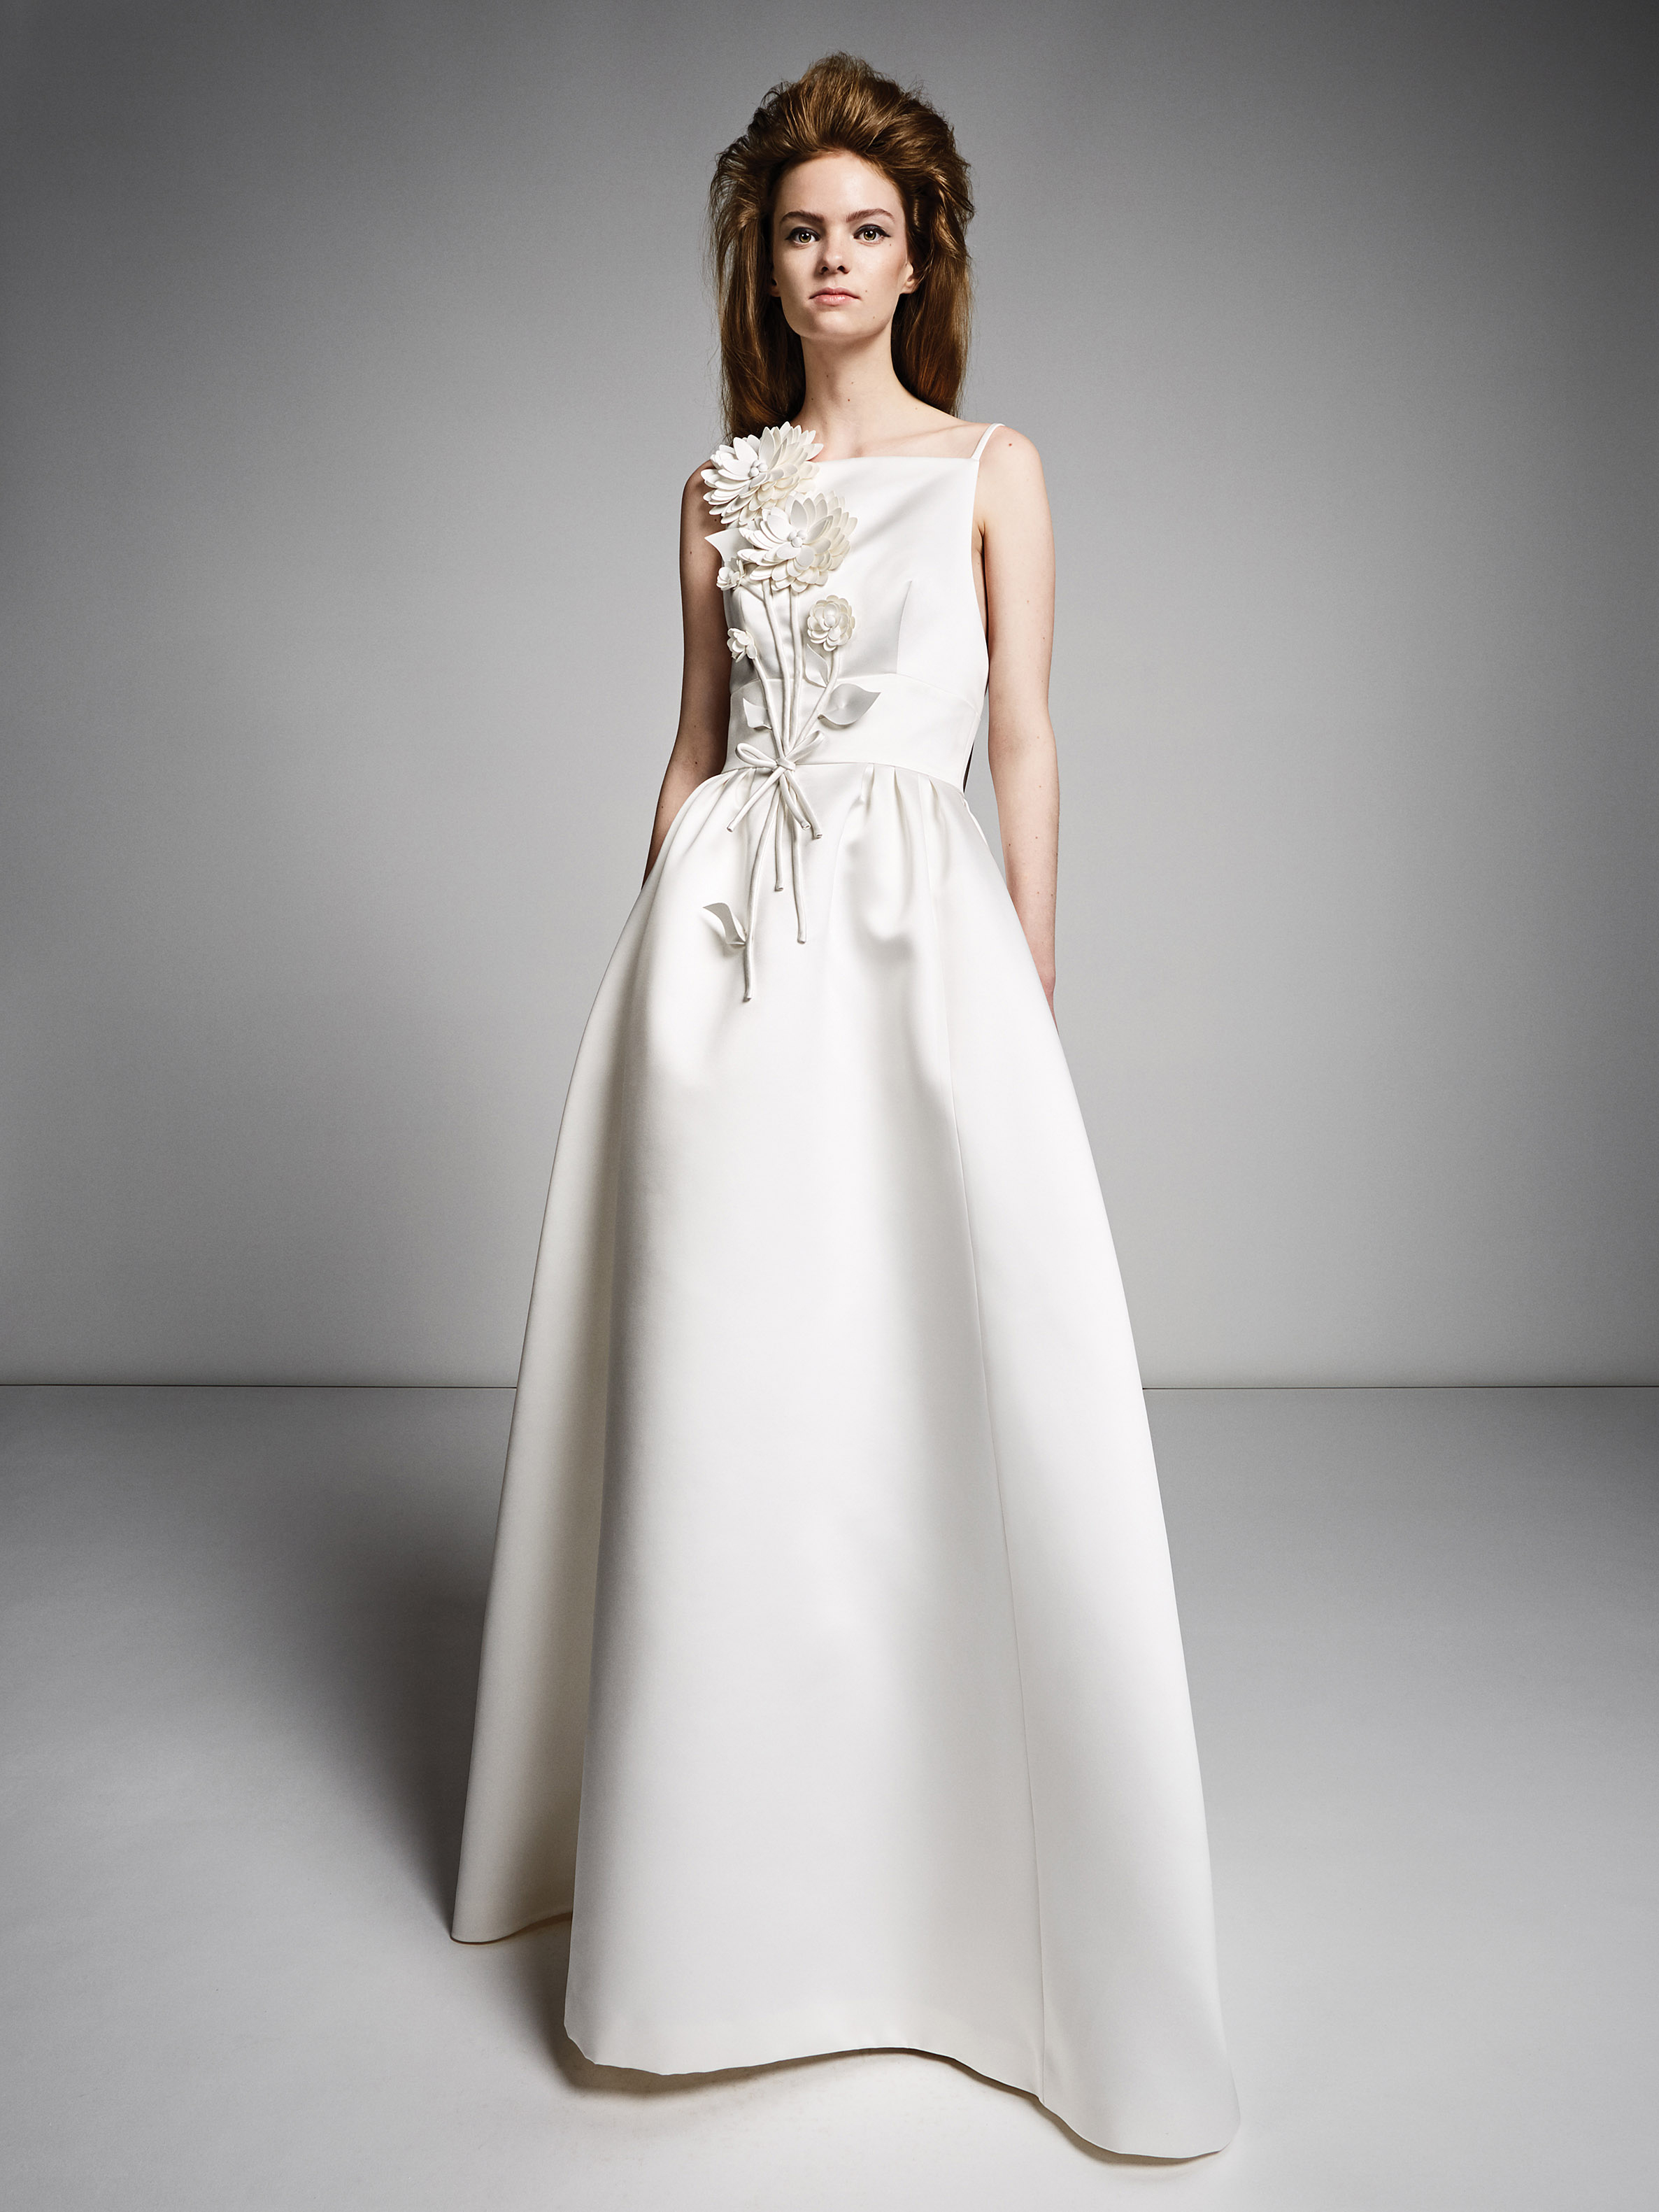 viktor rolf marriage fall 2019 spaghetti strap square neckline a-line gown with floral applique